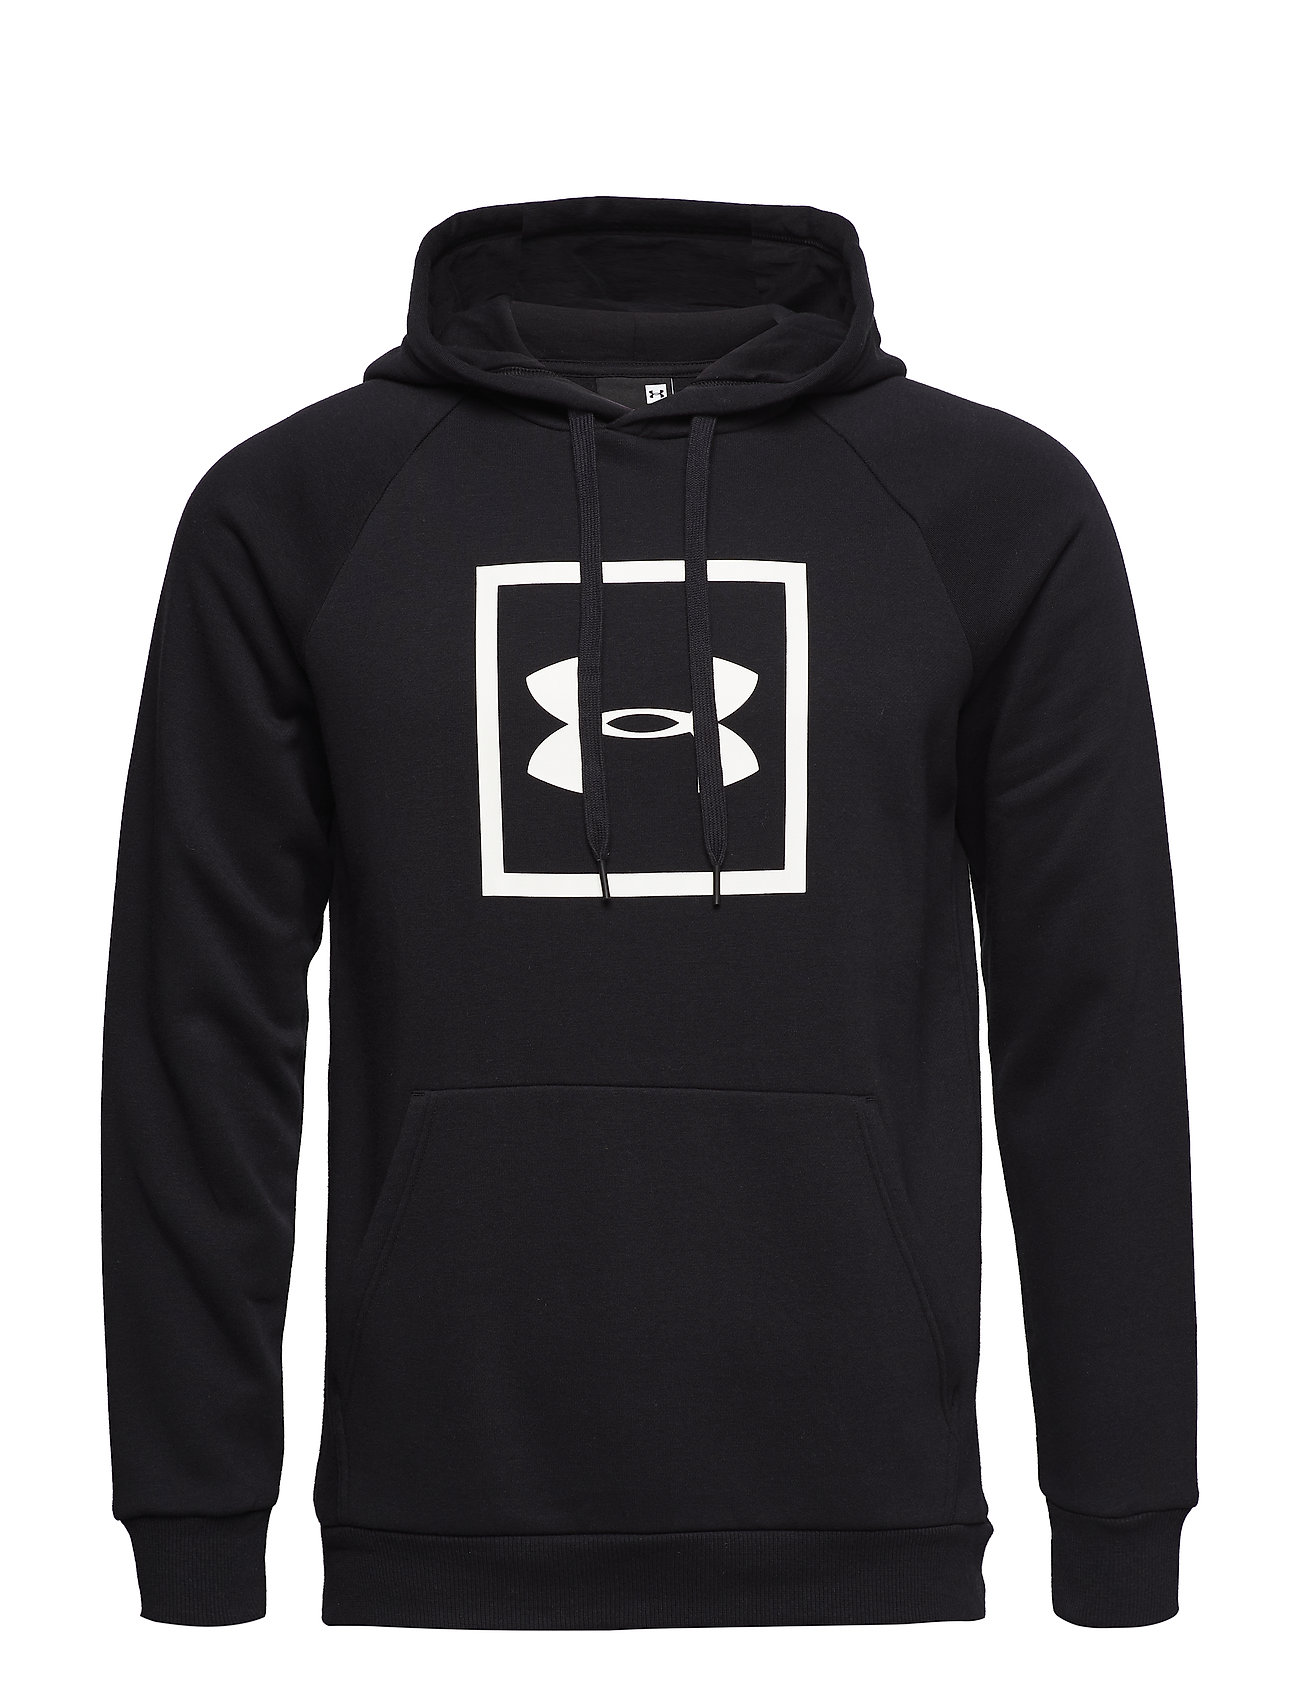 Under Armour RIVAL FLEECE LOGO HOODIE - BLACK